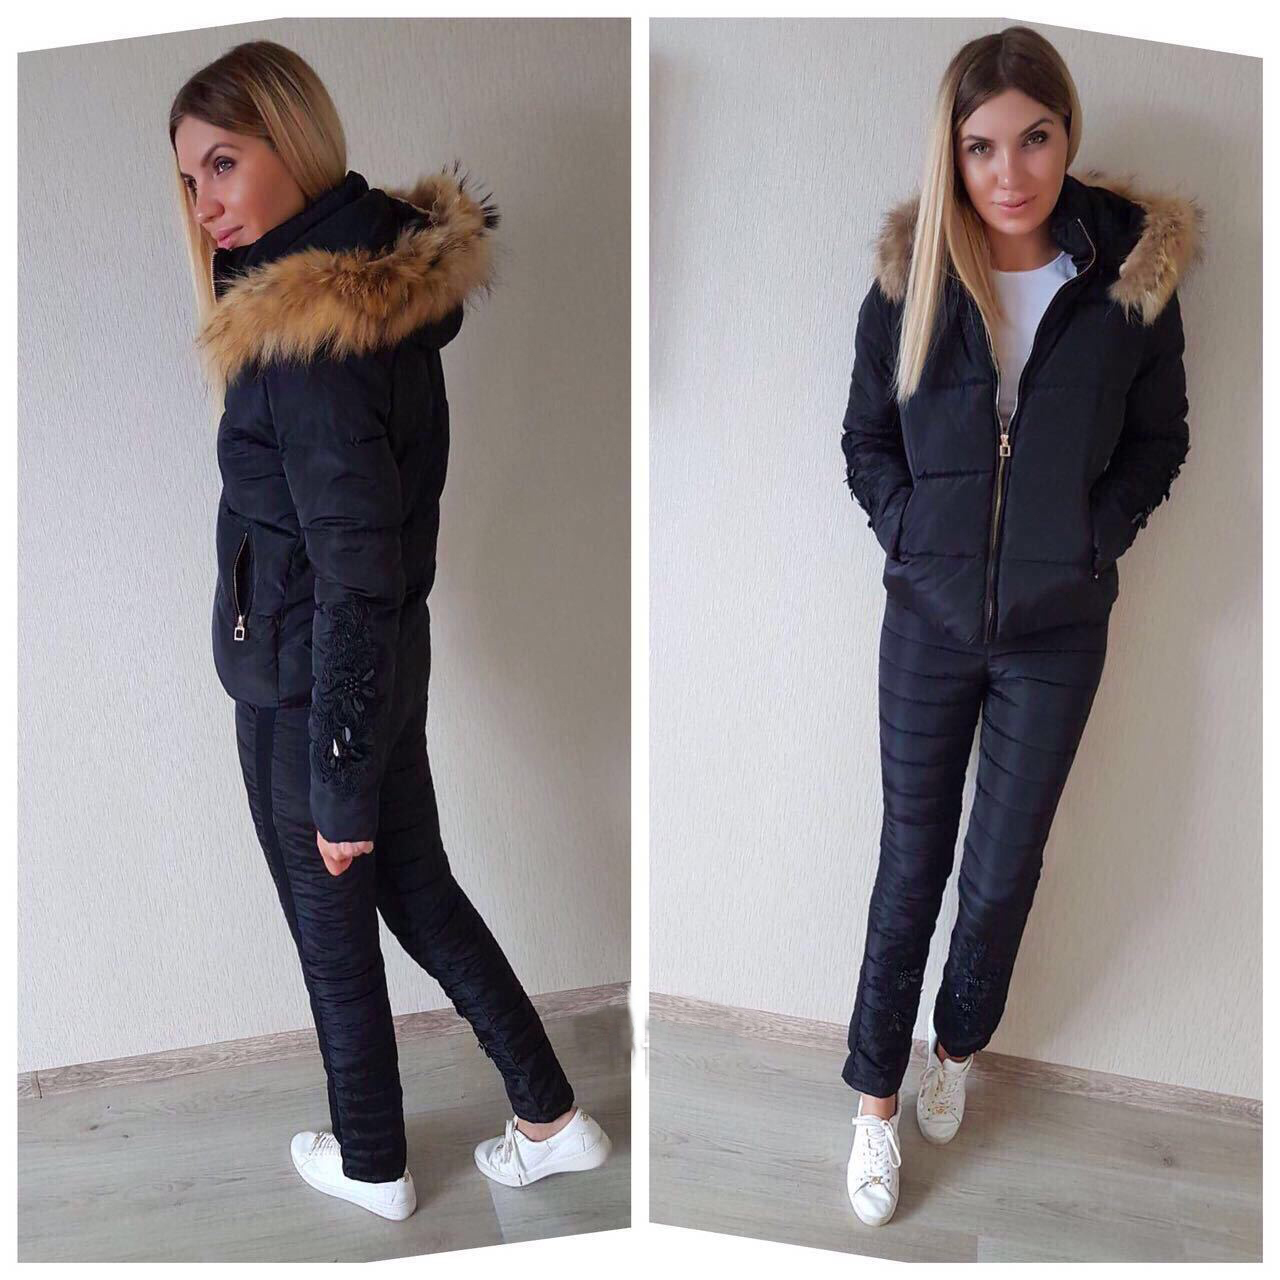 Elegant 2 Piece Sets Winter Solid Color Cotton Padded Suits Women Casual Embroidery Hooded Jacket Coat and Pants Warm Tracksuits in Women 39 s Sets from Women 39 s Clothing